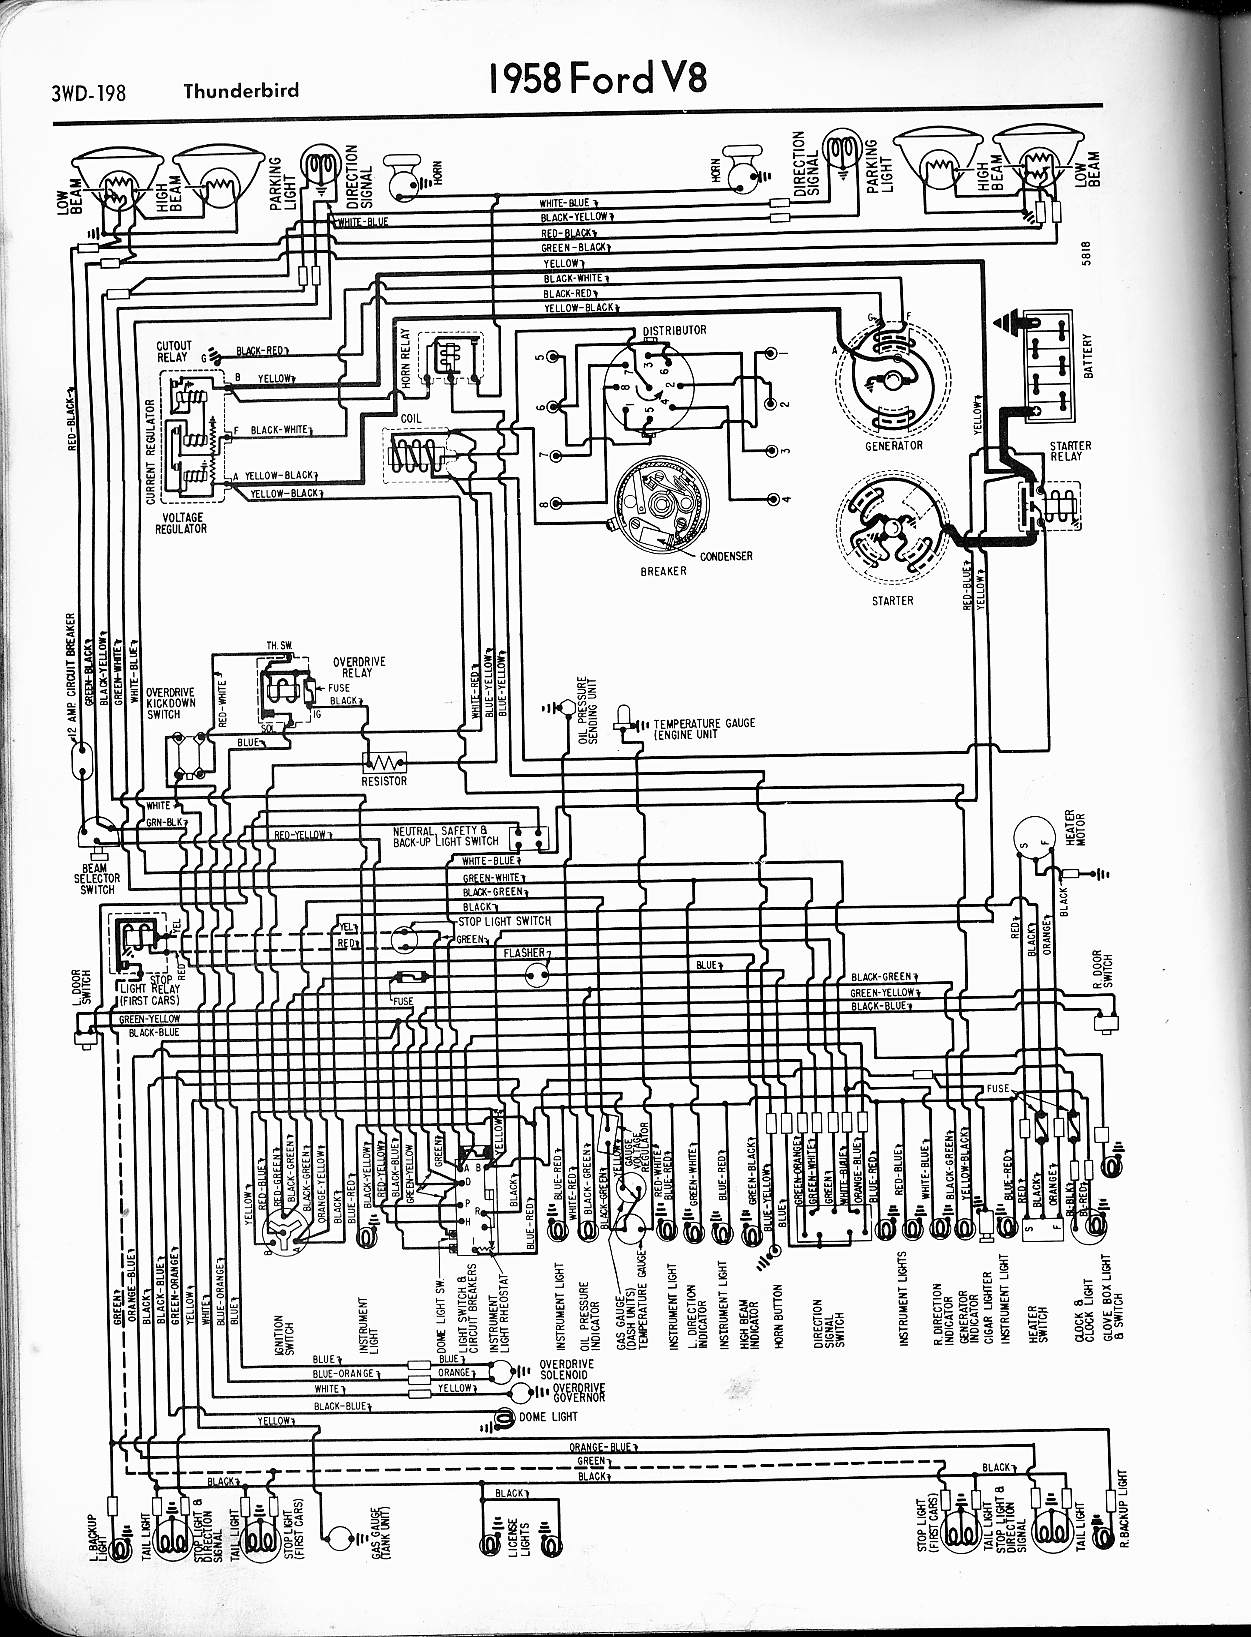 1940 Ford Truck Wiring Diagram Libraries Schematic Pickup Online